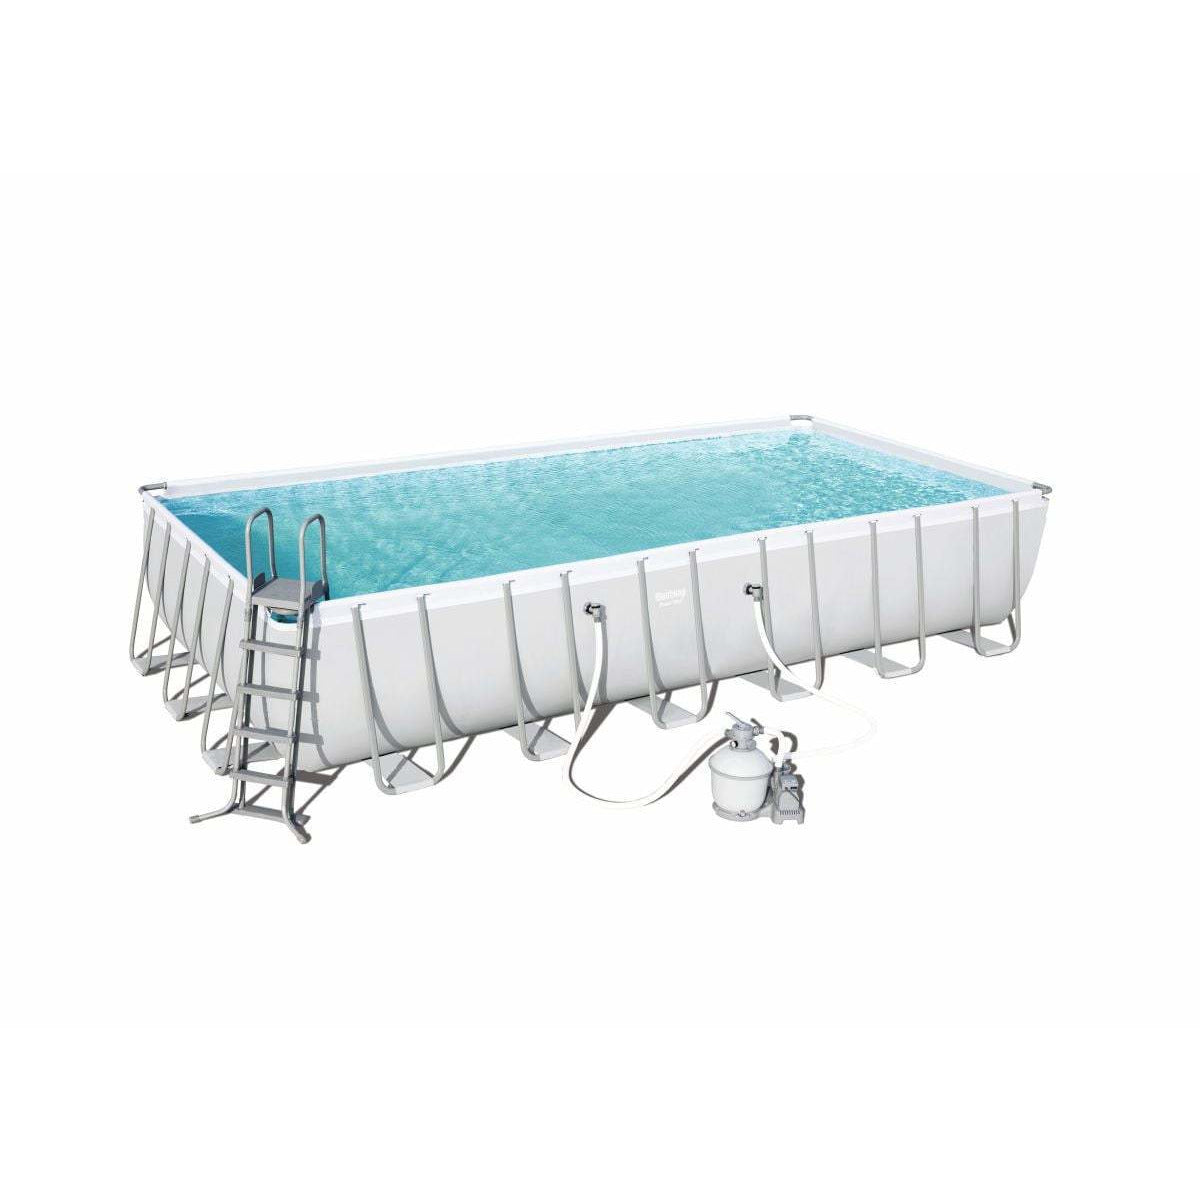 Bestway 56475 - 7.32M X 3.66M X 1.32M POWER STEEL™ RECTANGULAR POOL SET - rafplay